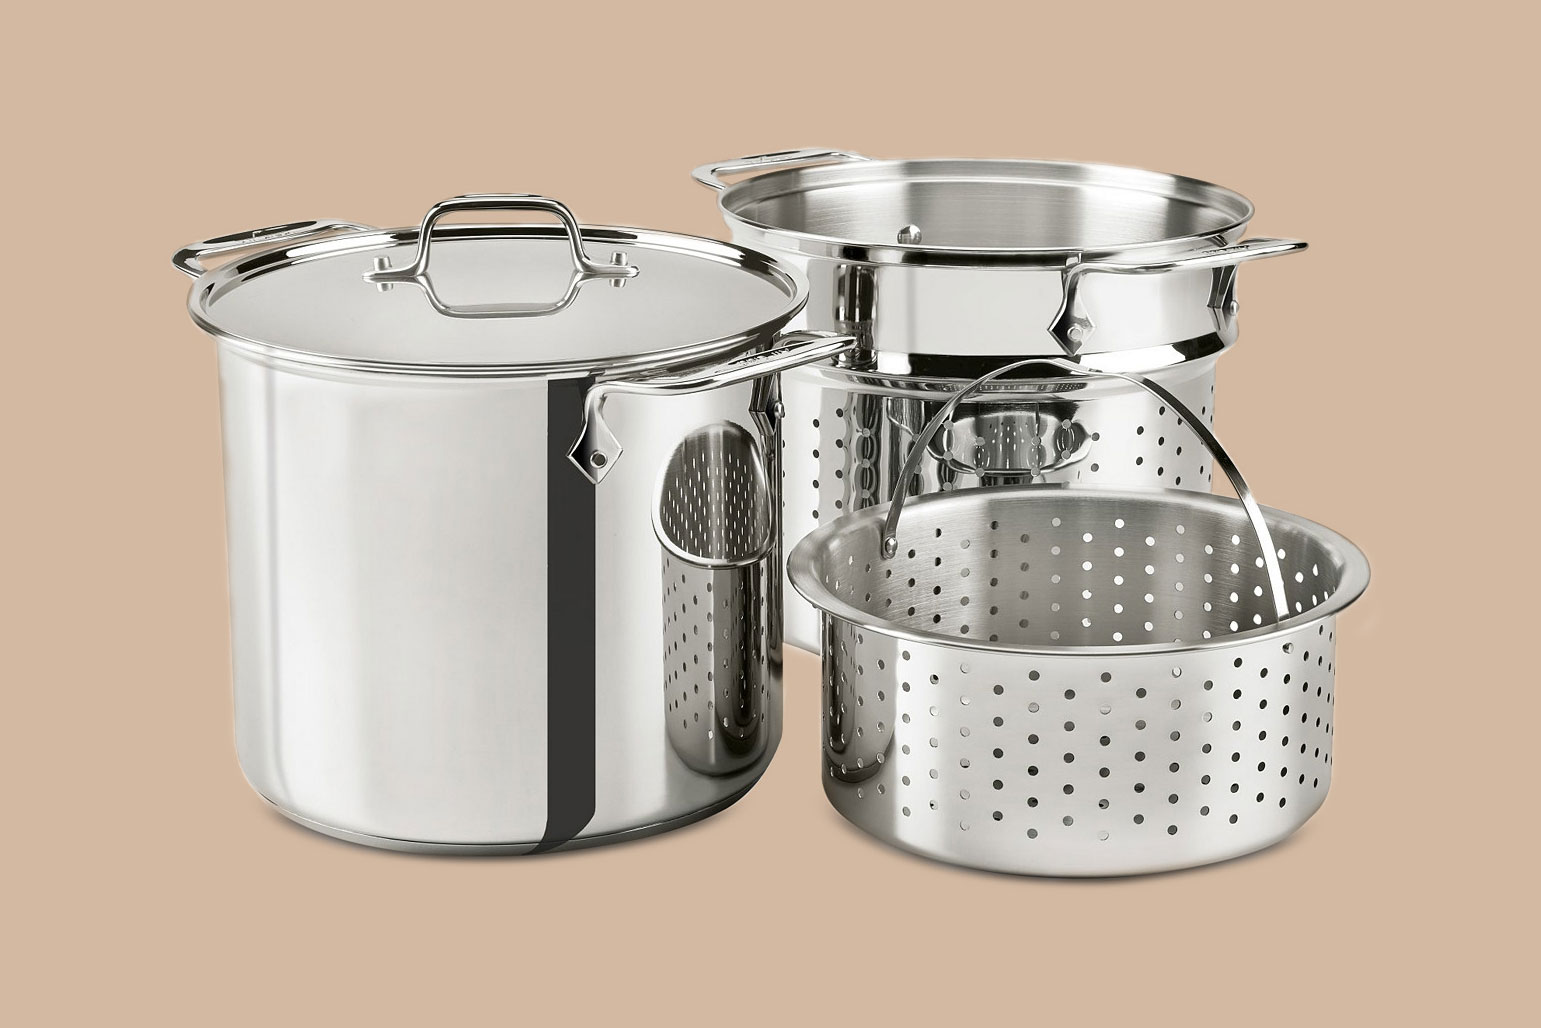 stainless steel multi cook and steamer basket